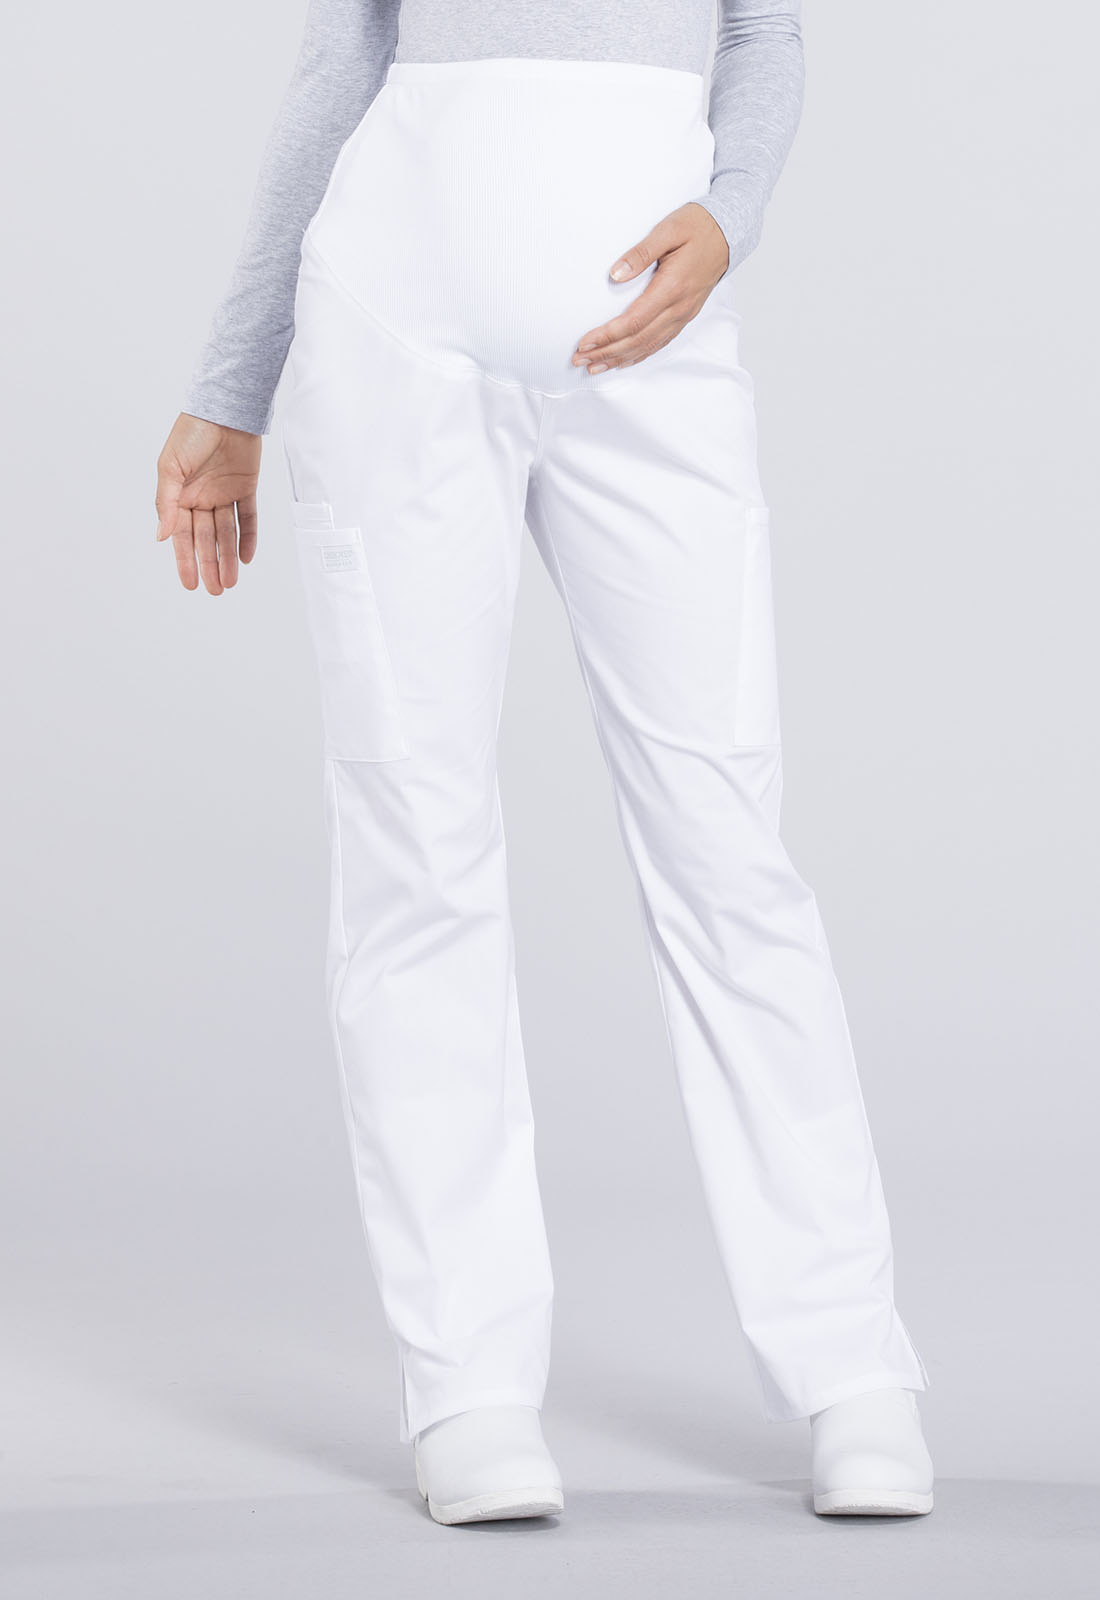 ab5328df2a6 WW Professionals Maternity Straight Leg Pant in White WW220T-WHT ...